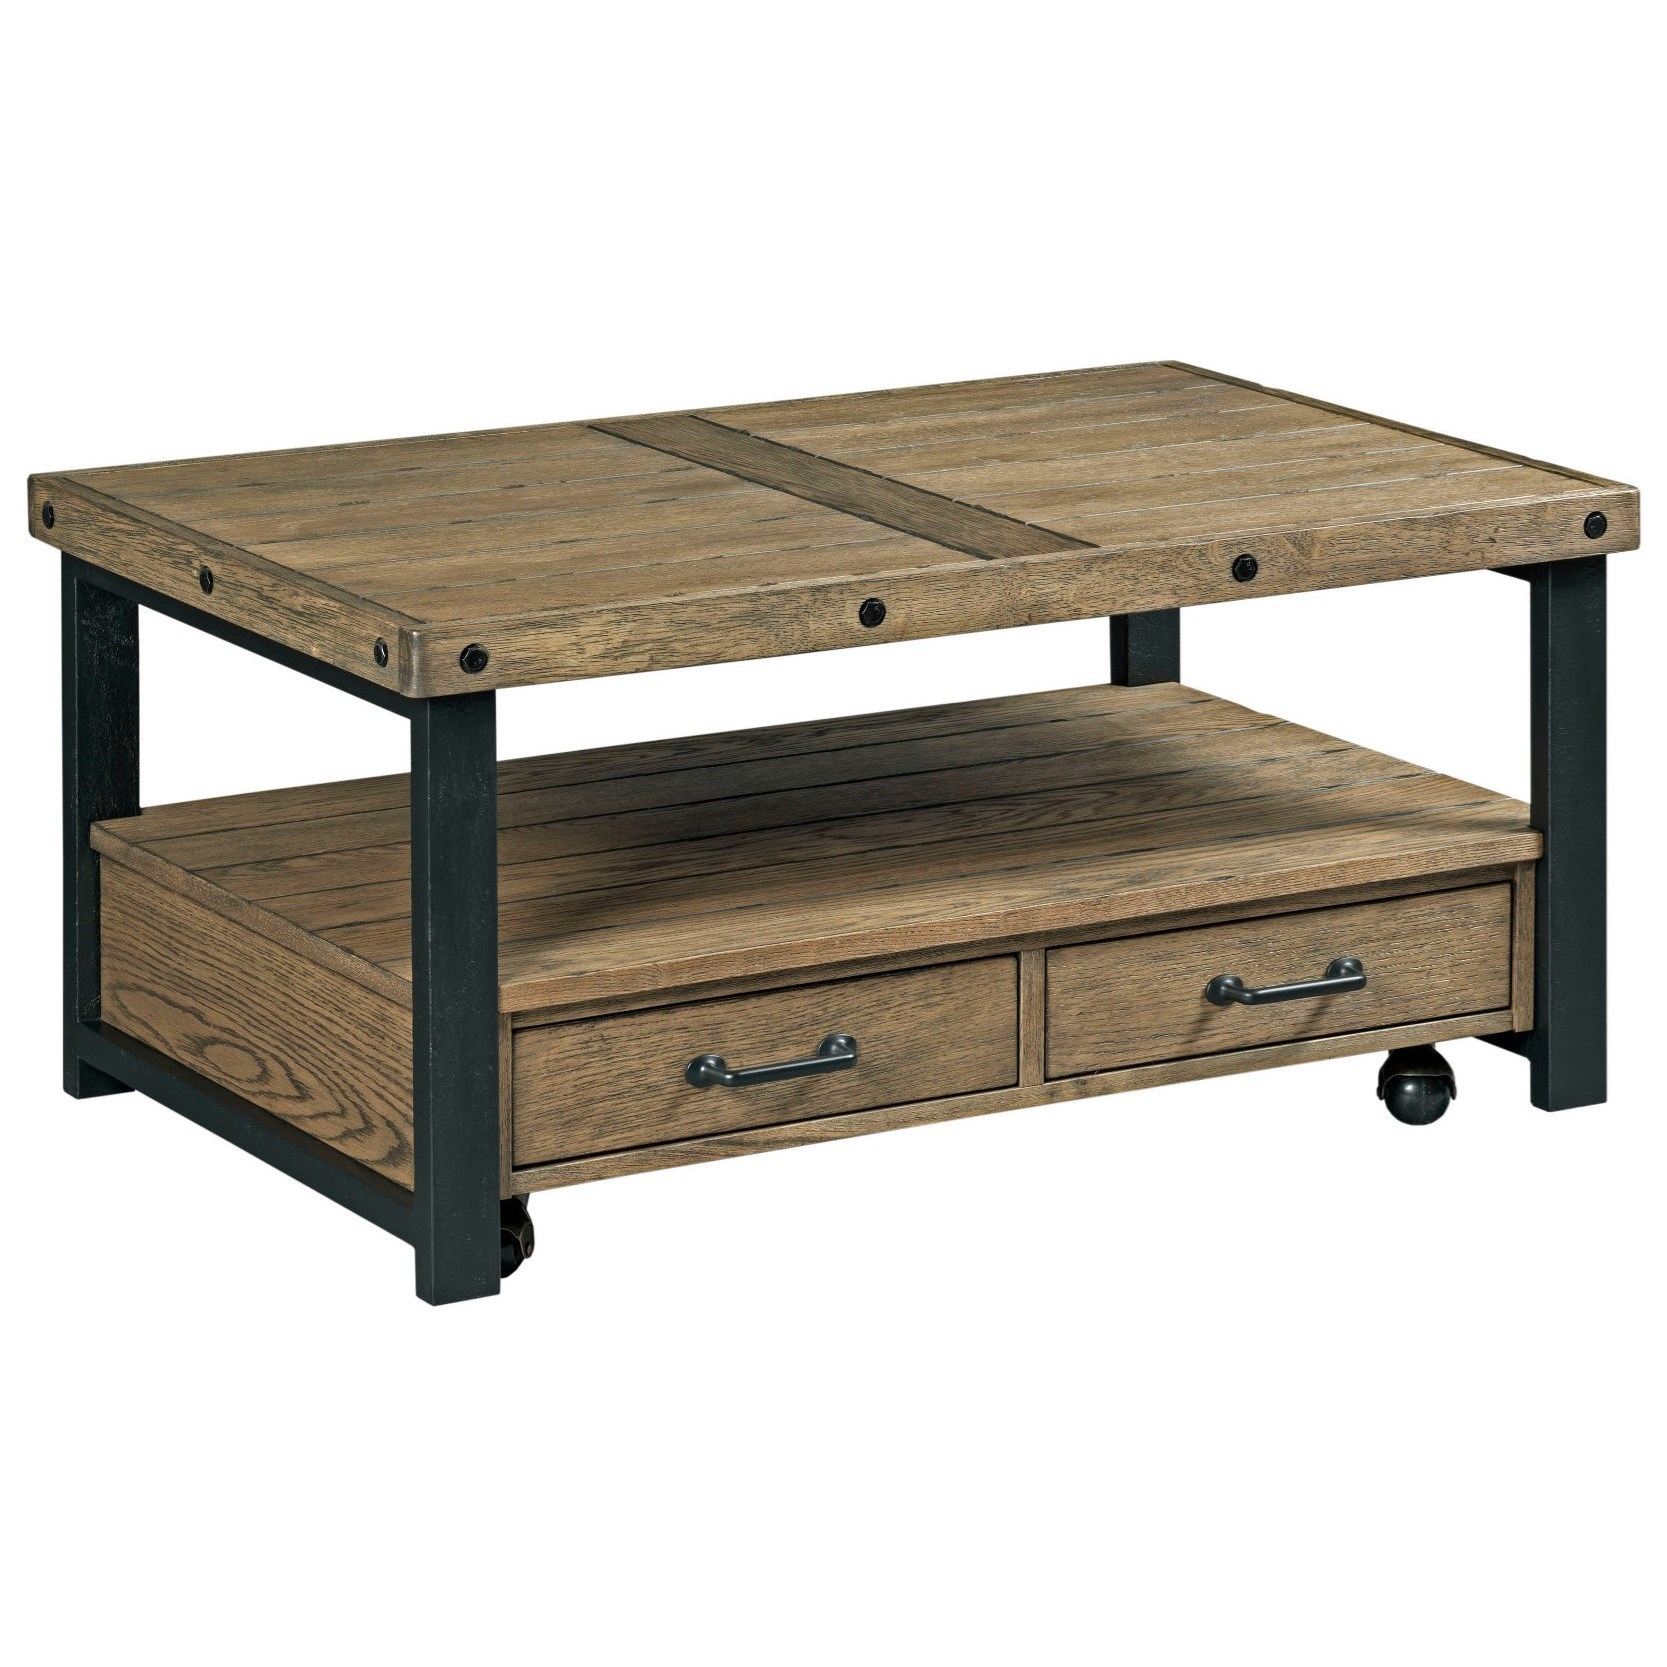 Ashley Furniture Horseheads Ny: England Workbench Small Rectangular 2-Drawer Cocktail